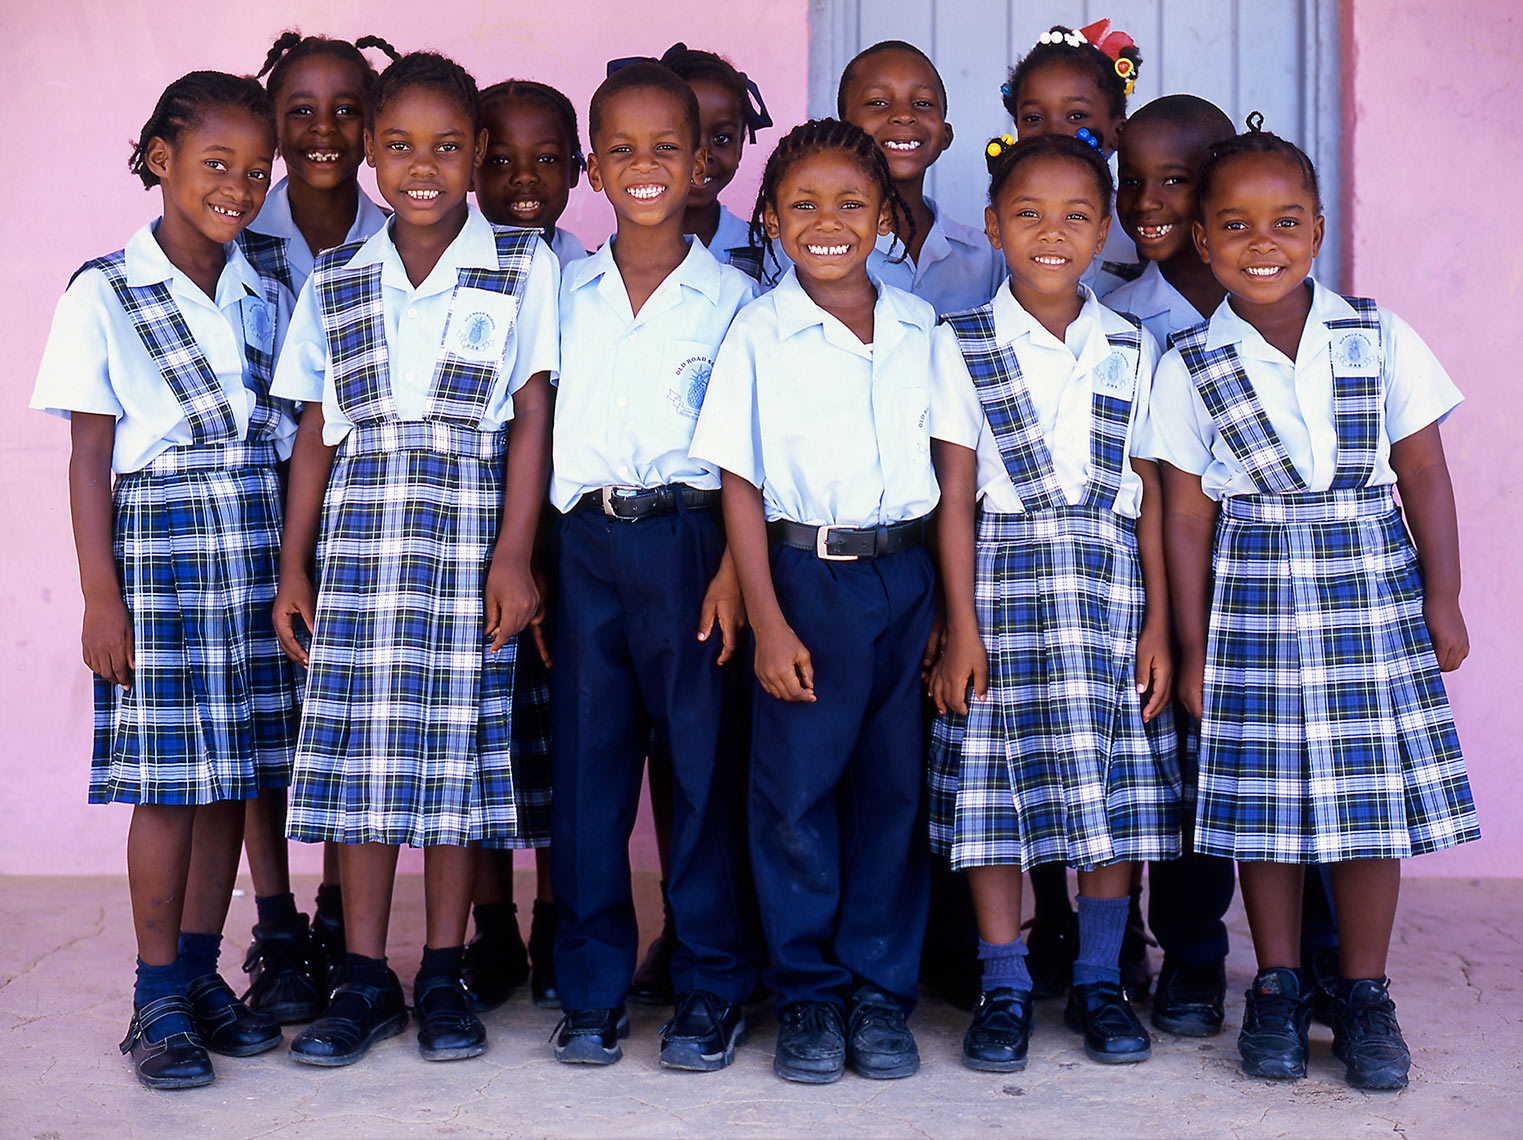 WT-Antigua-School-kids-